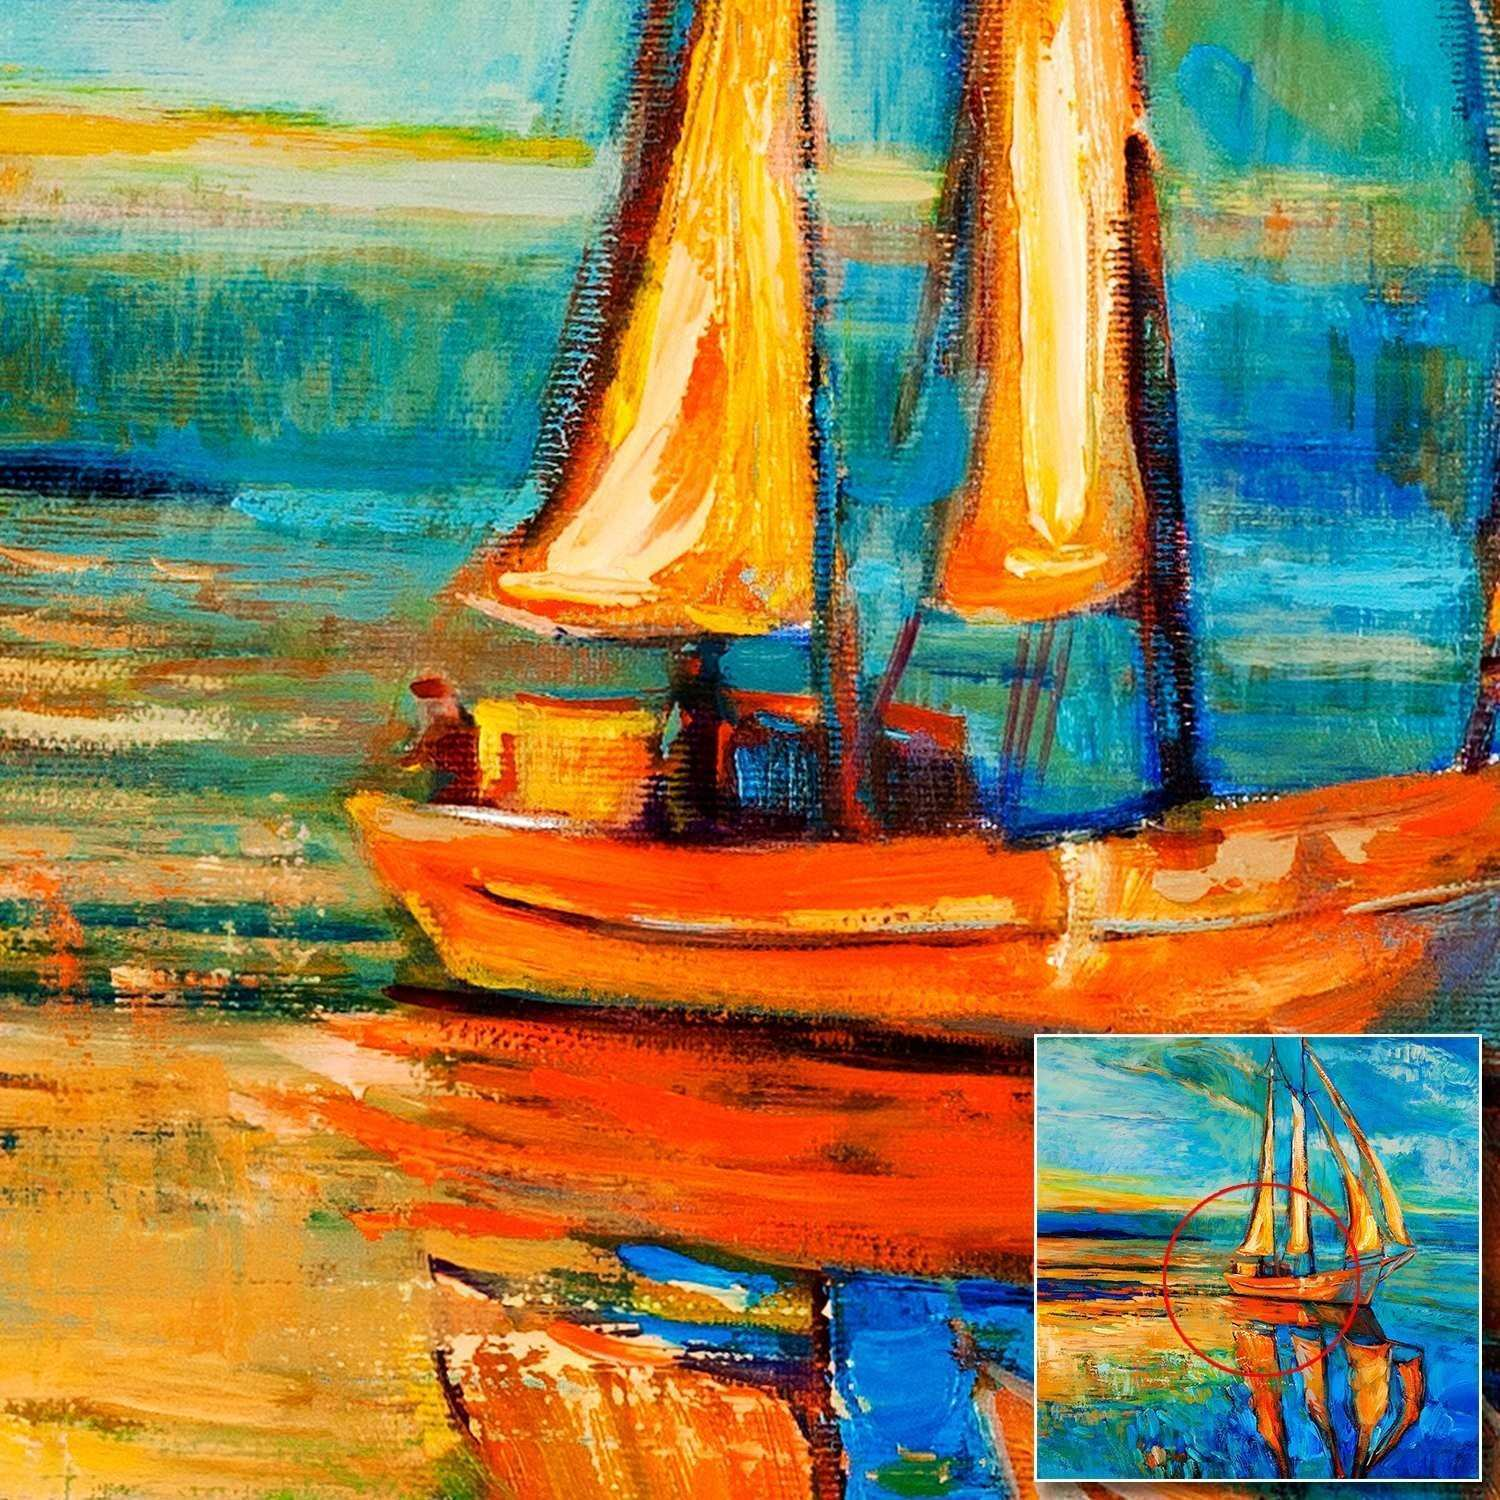 Blue Sailboat Abstract Oil Painting Prints Modern Home Wall Decor Landscape Picture Canvas Paintings for Living Room Wall Art in Painting &